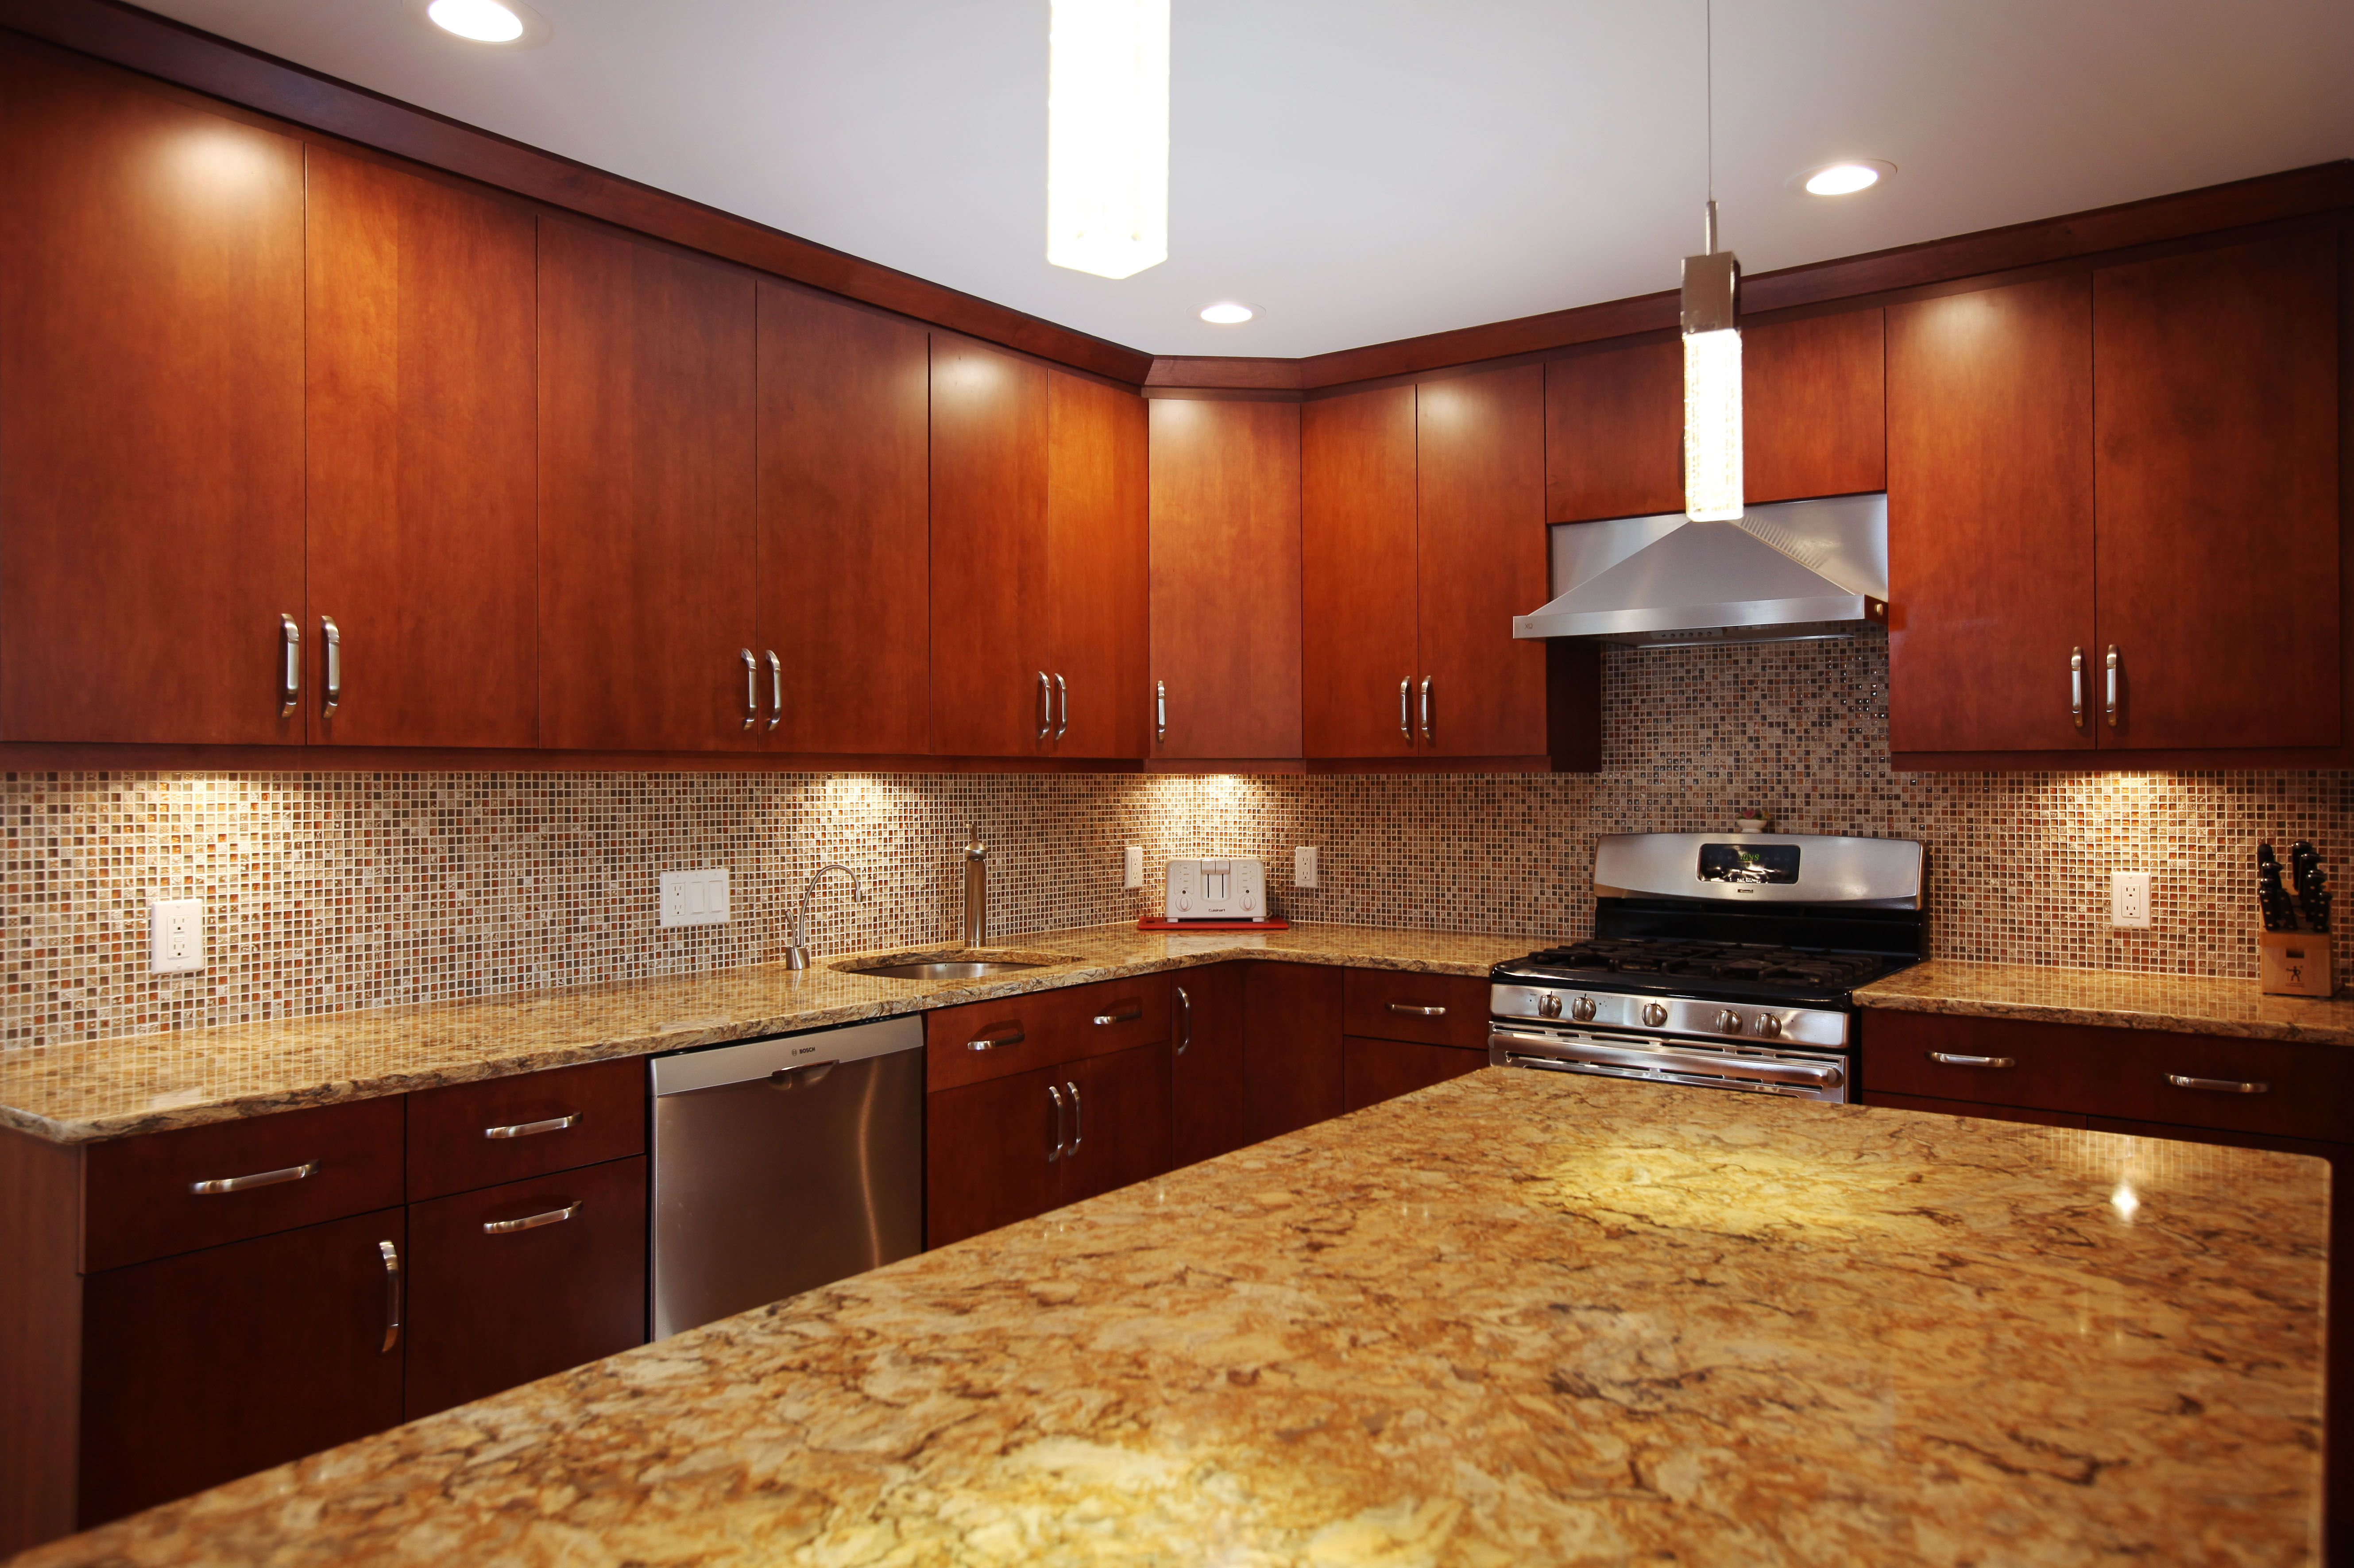 Cherry Slab Briarwood Kitchen Cabinets With A Buckingham Cambria  Countertop; I Think This Is The